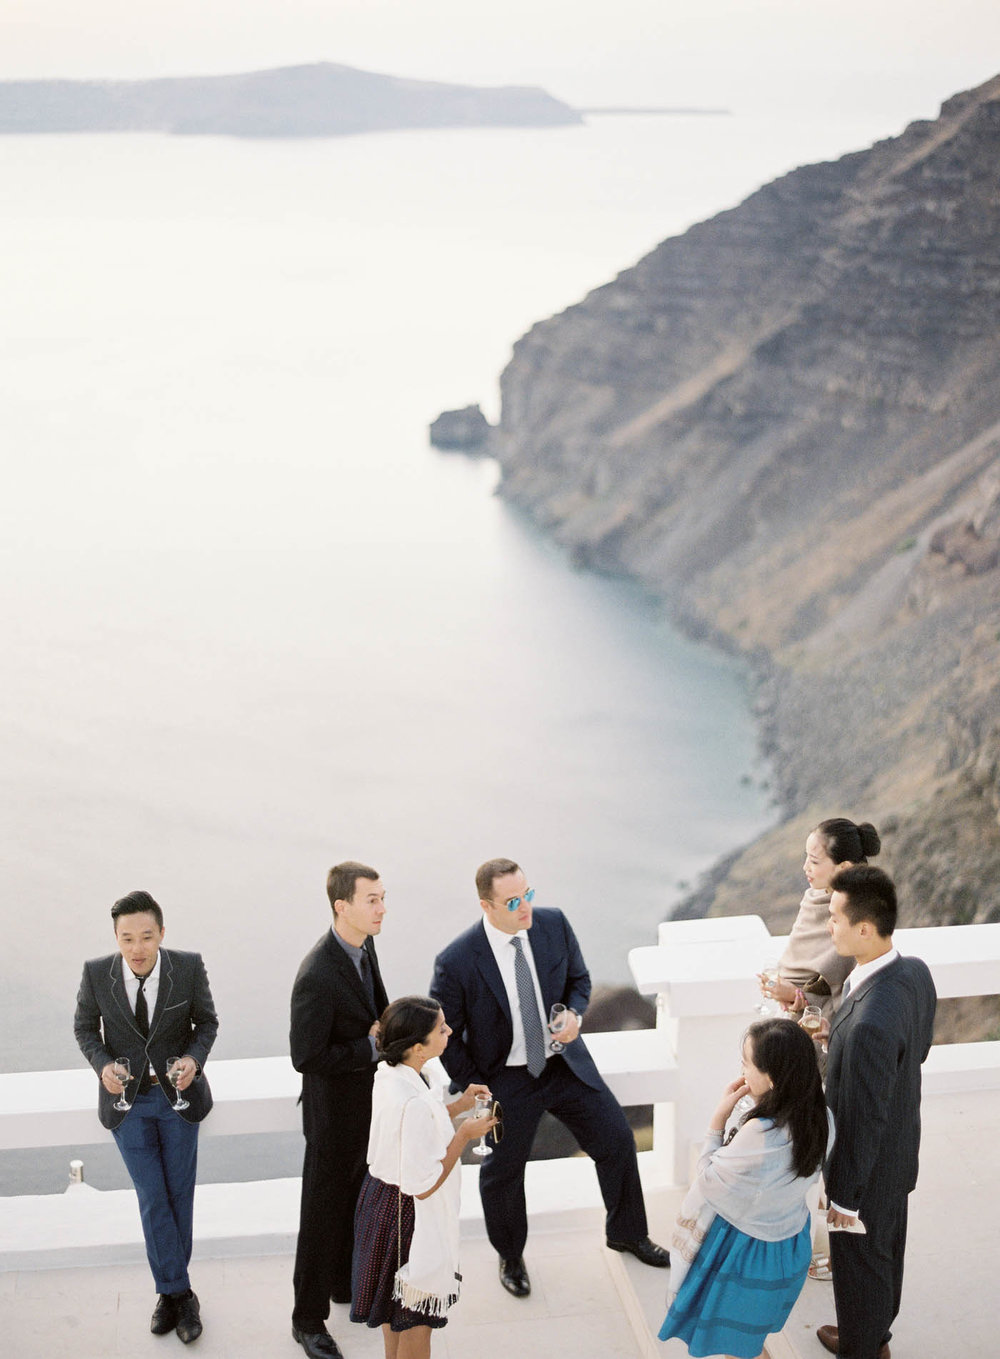 santorini-chinese-wedding-jen-huang-11.jpg